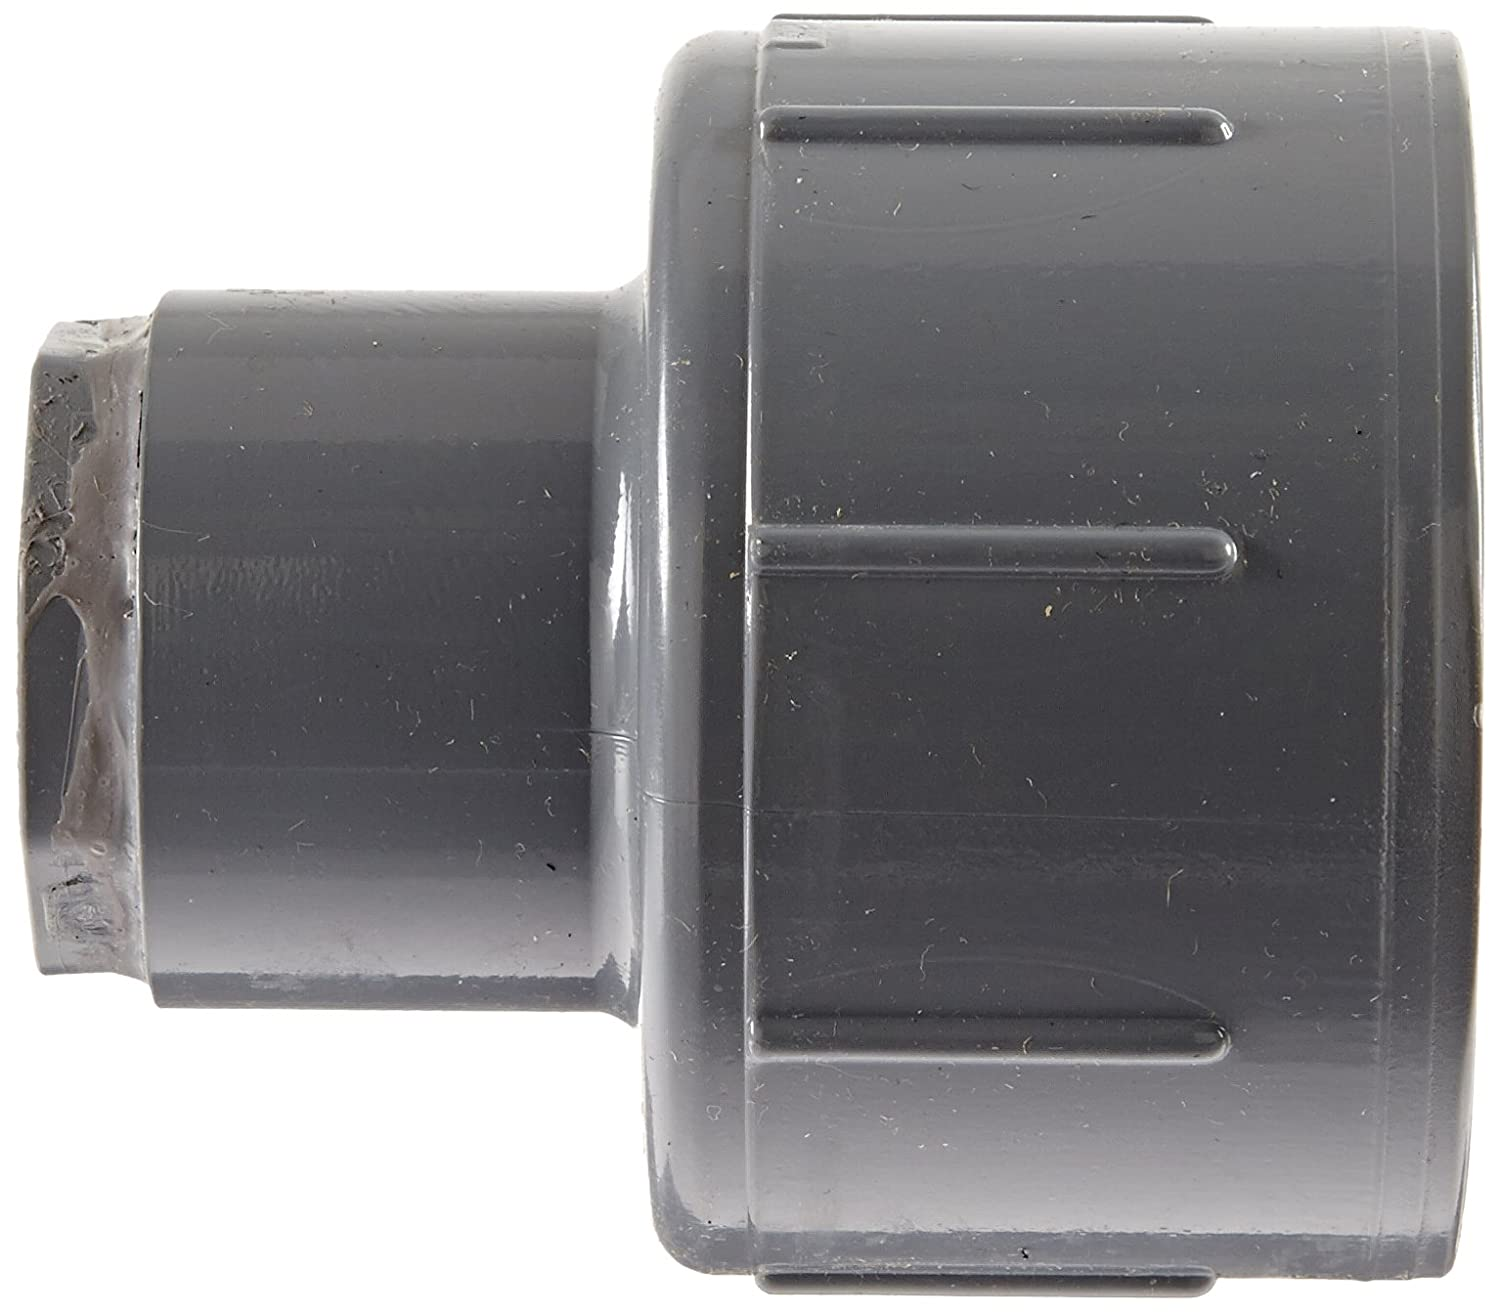 Schedule 80 GF Piping Systems CPVC Pipe Fitting 1-1//2 Slip Socket 1-1//2 Slip Socket 9829-015 Gray Coupling